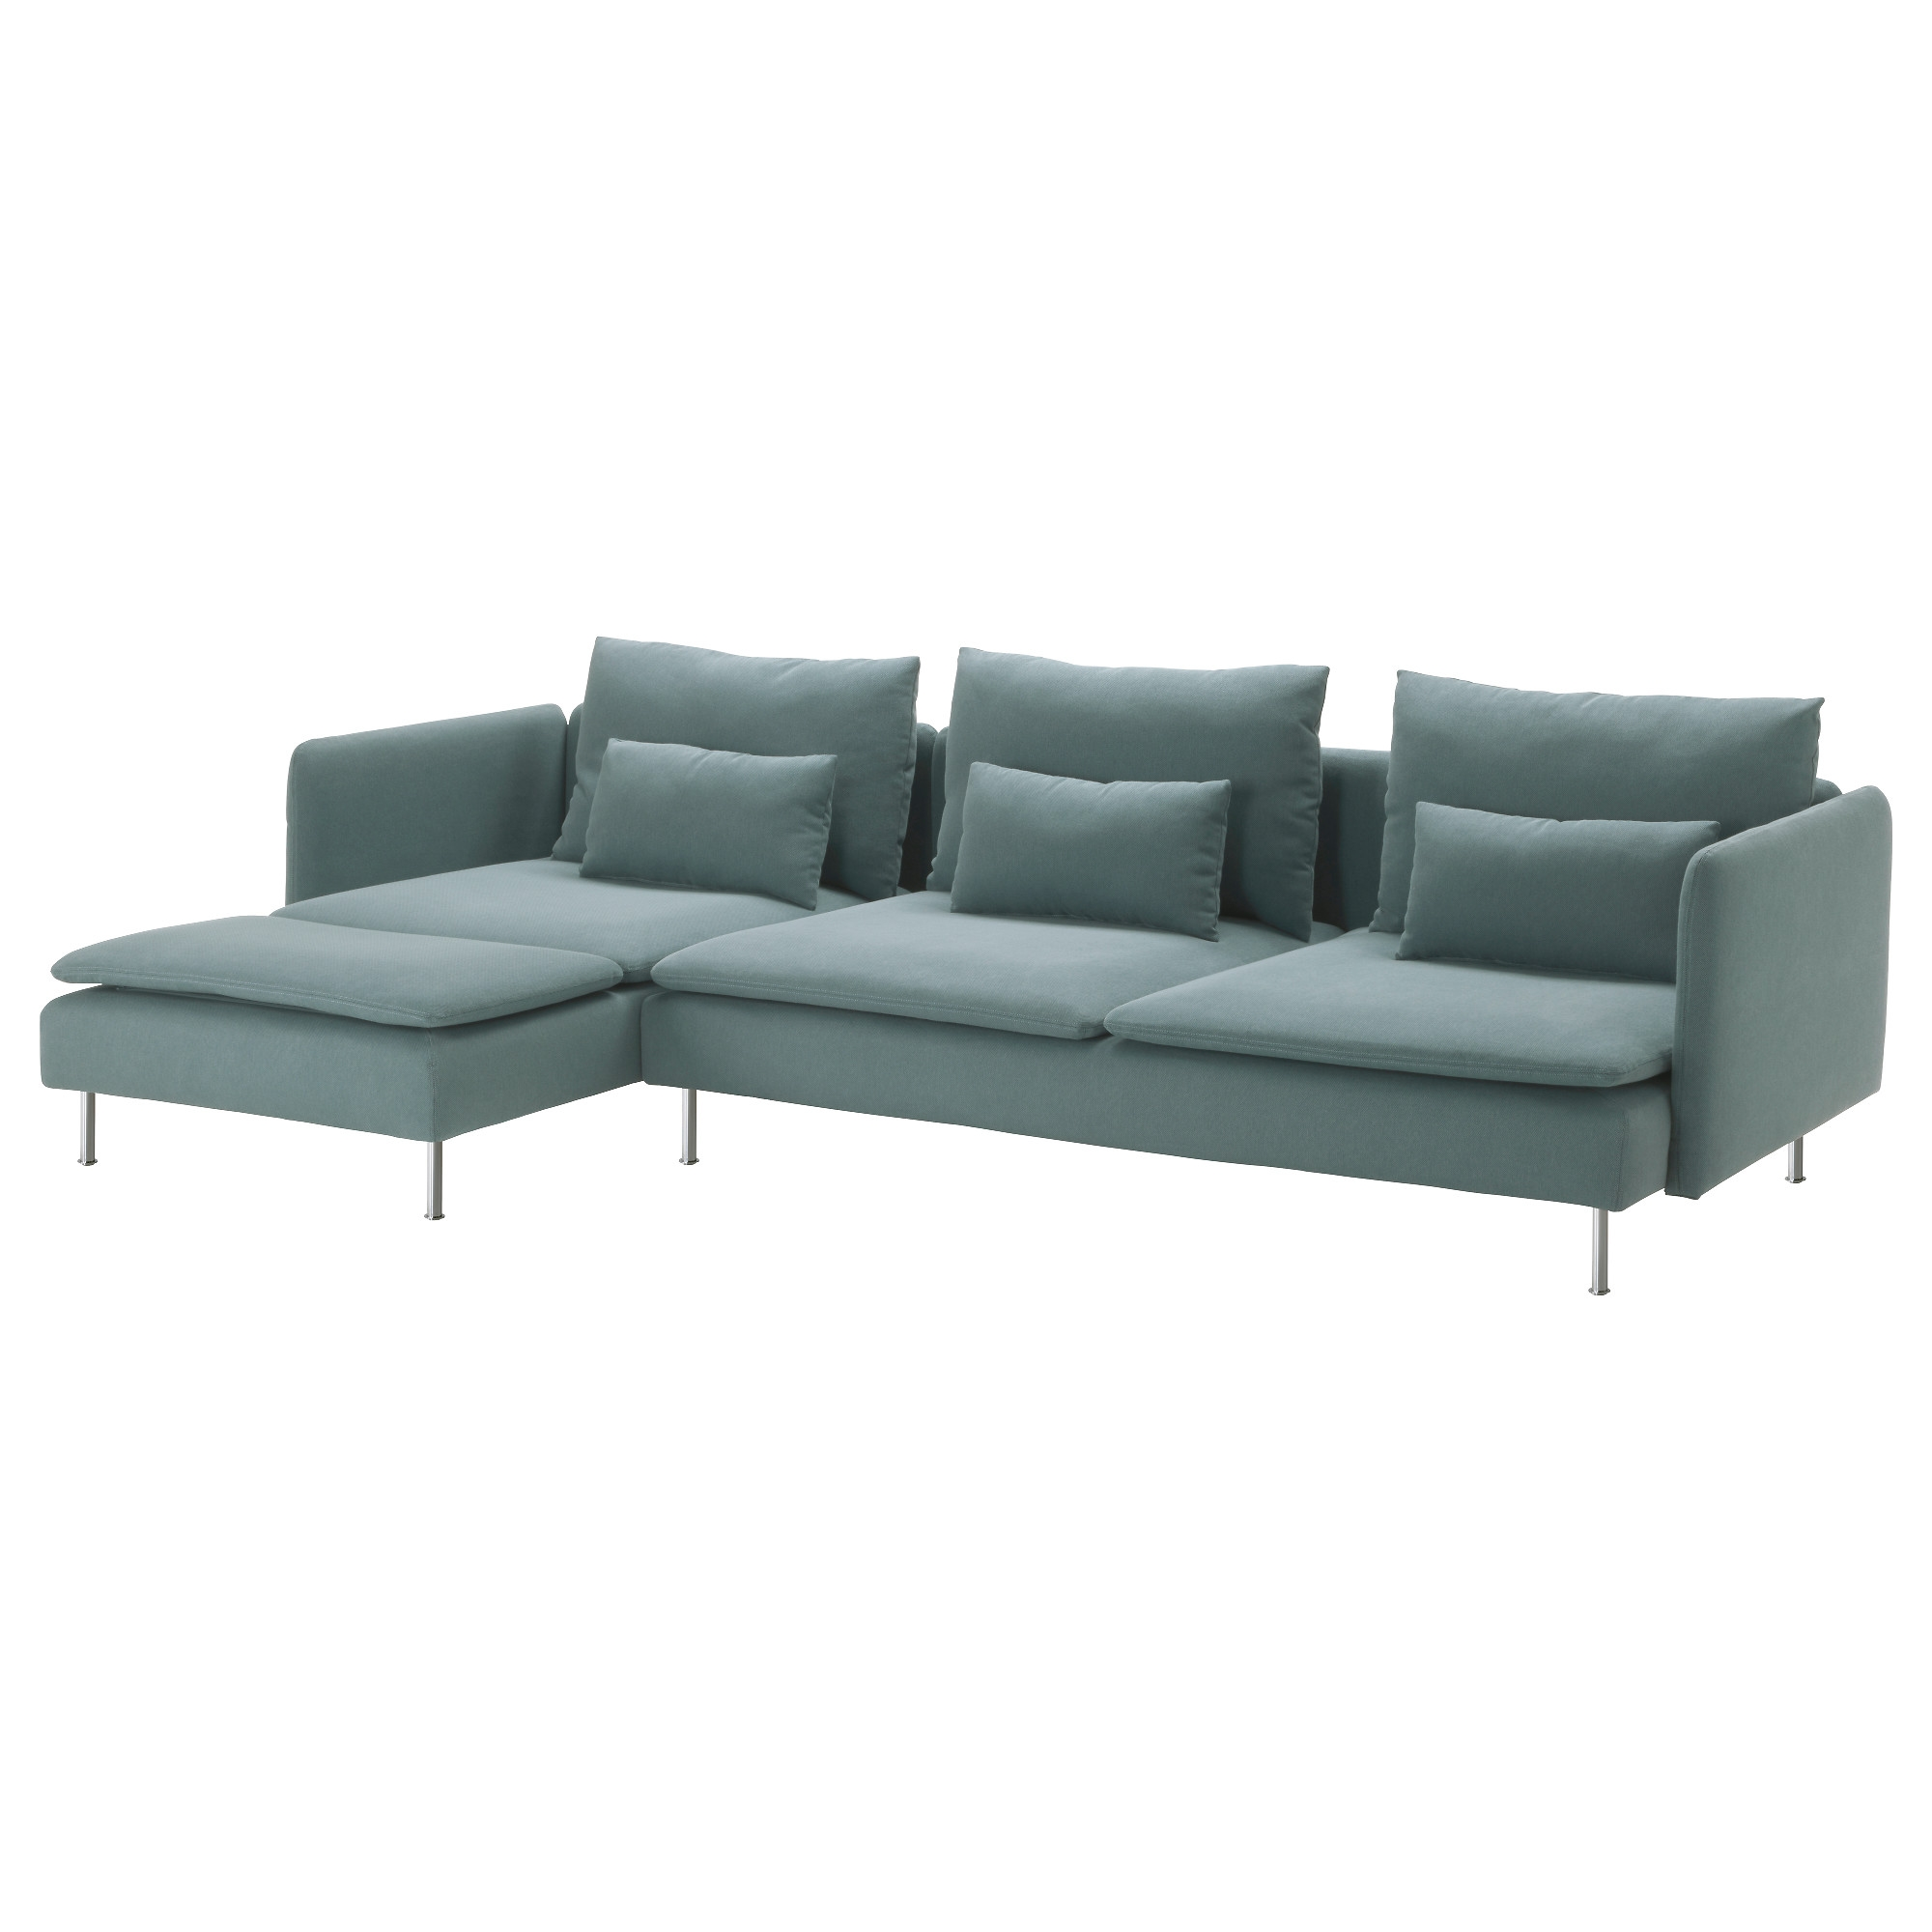 Sectional Sofas Couches Ikea Within Compact Sectional Sofas (#9 of 12)